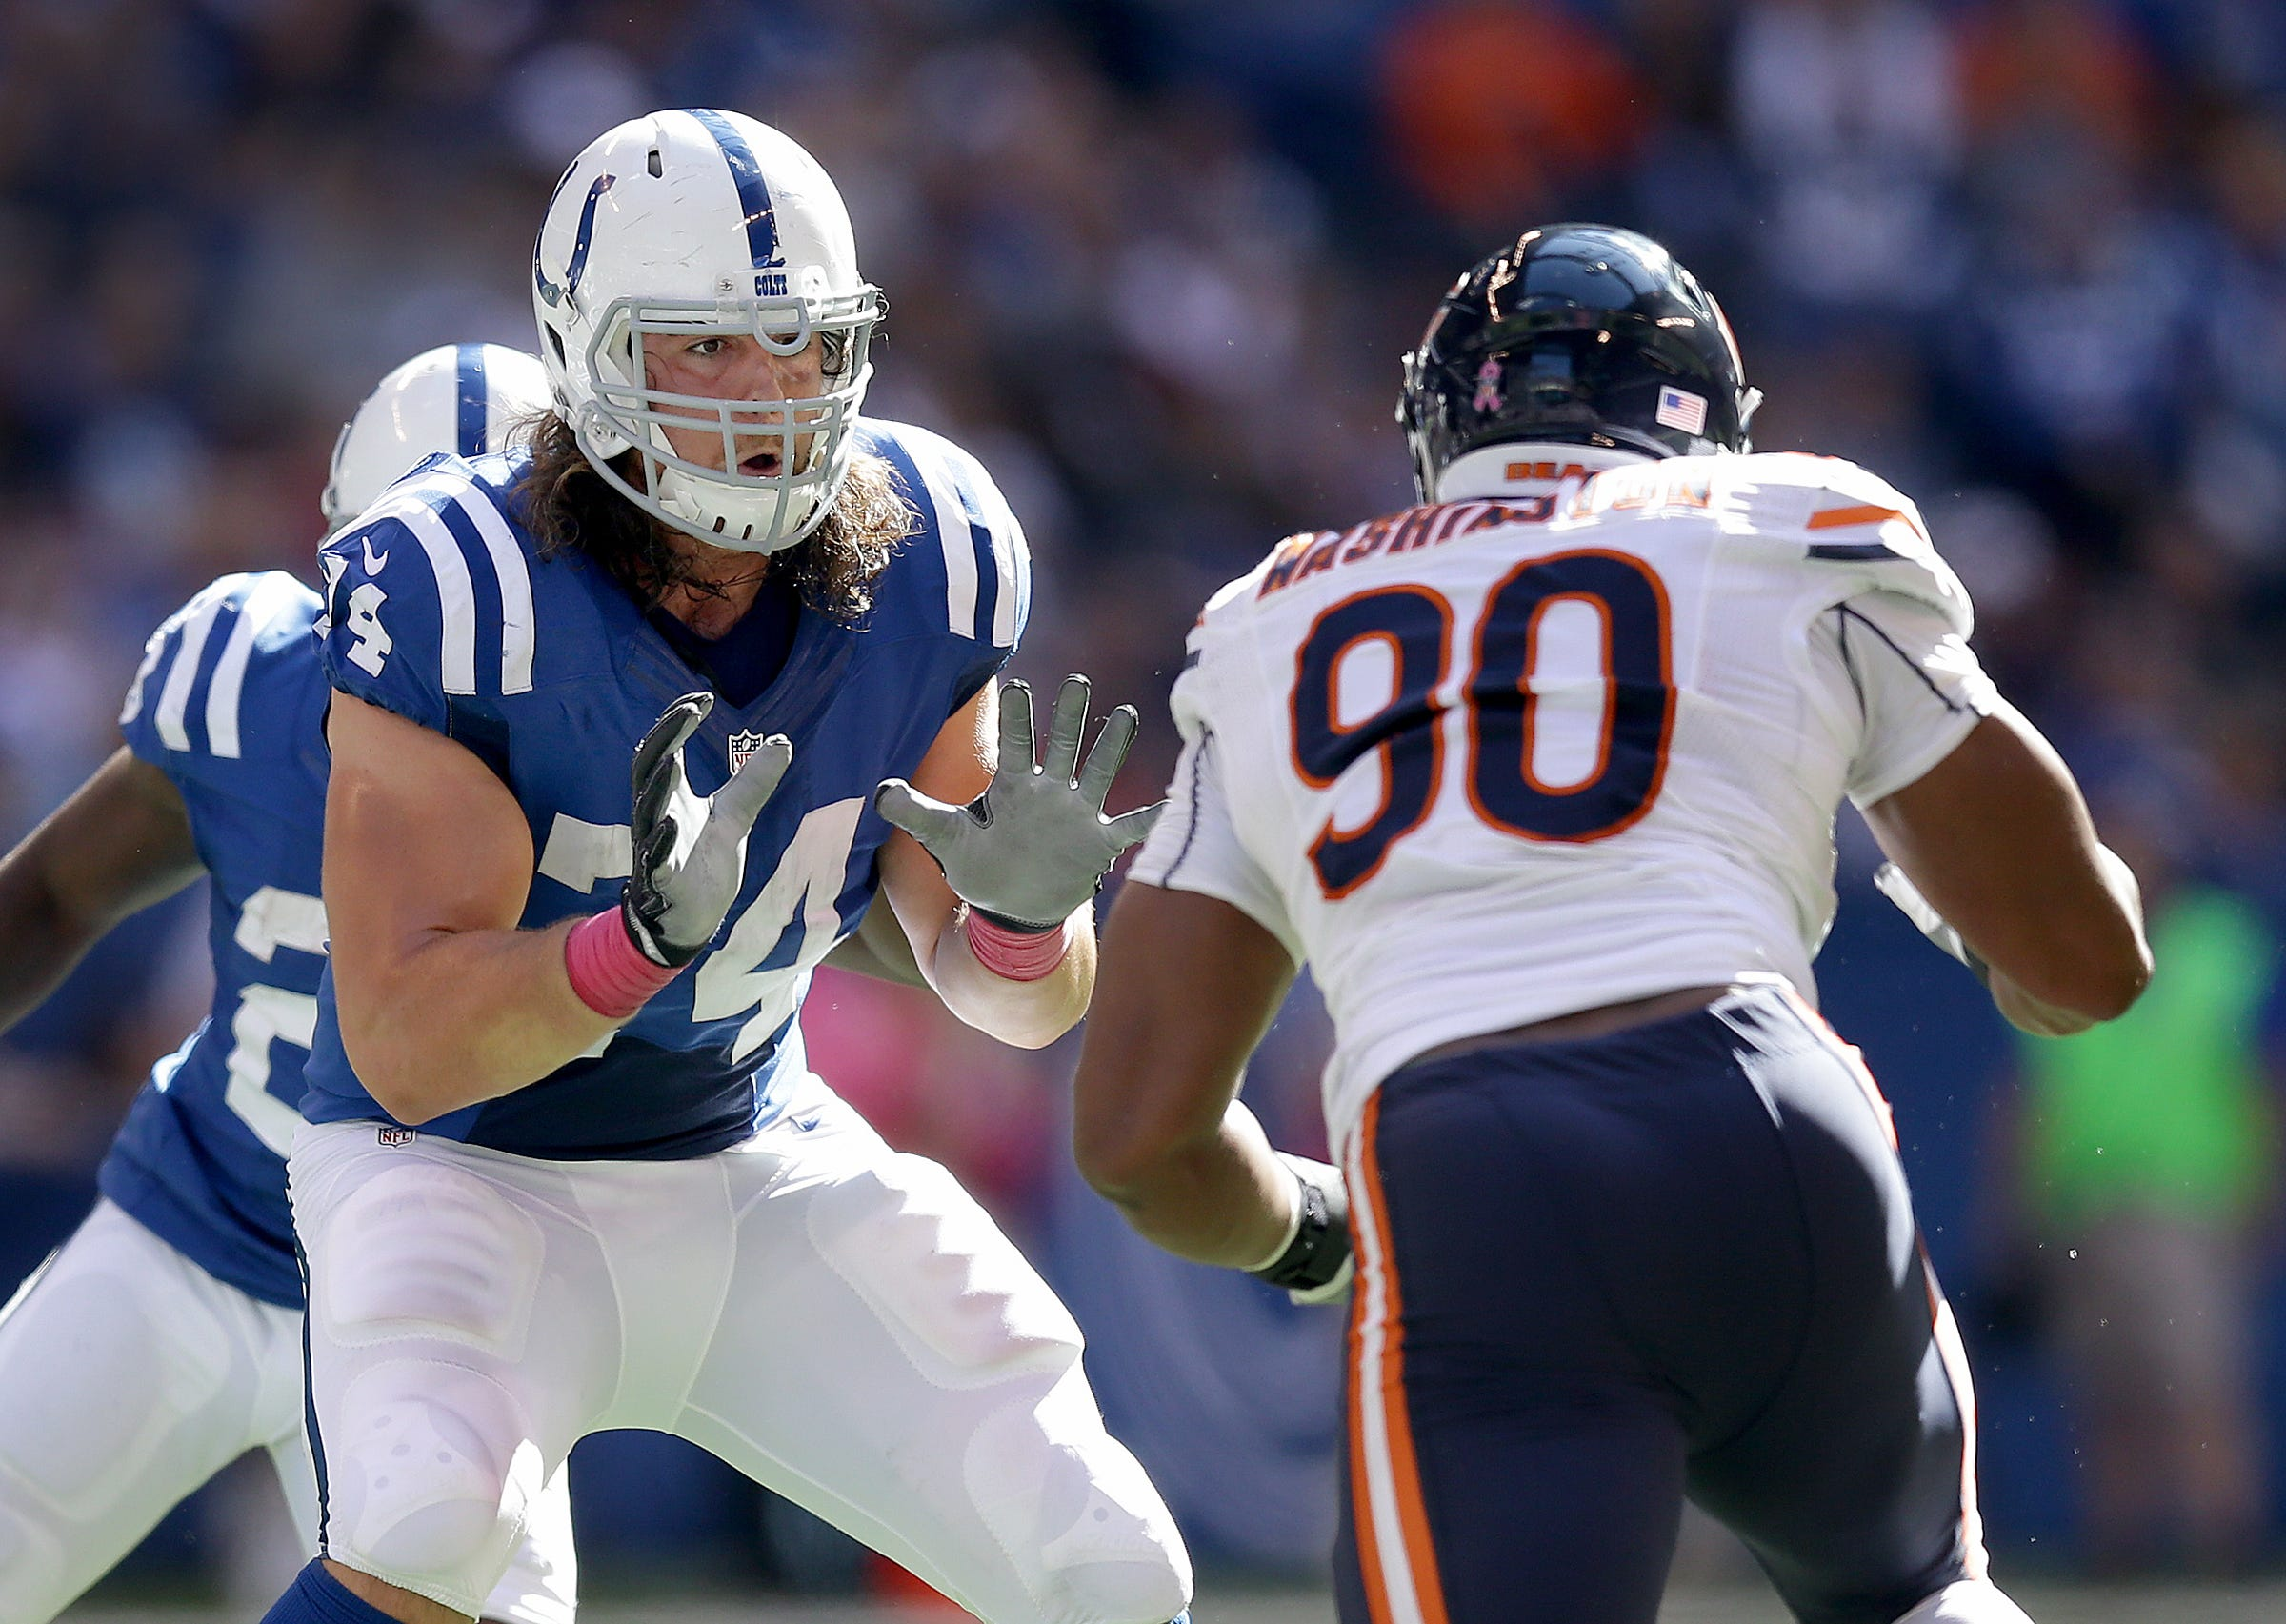 Colts need consistency from veteran Castonzo